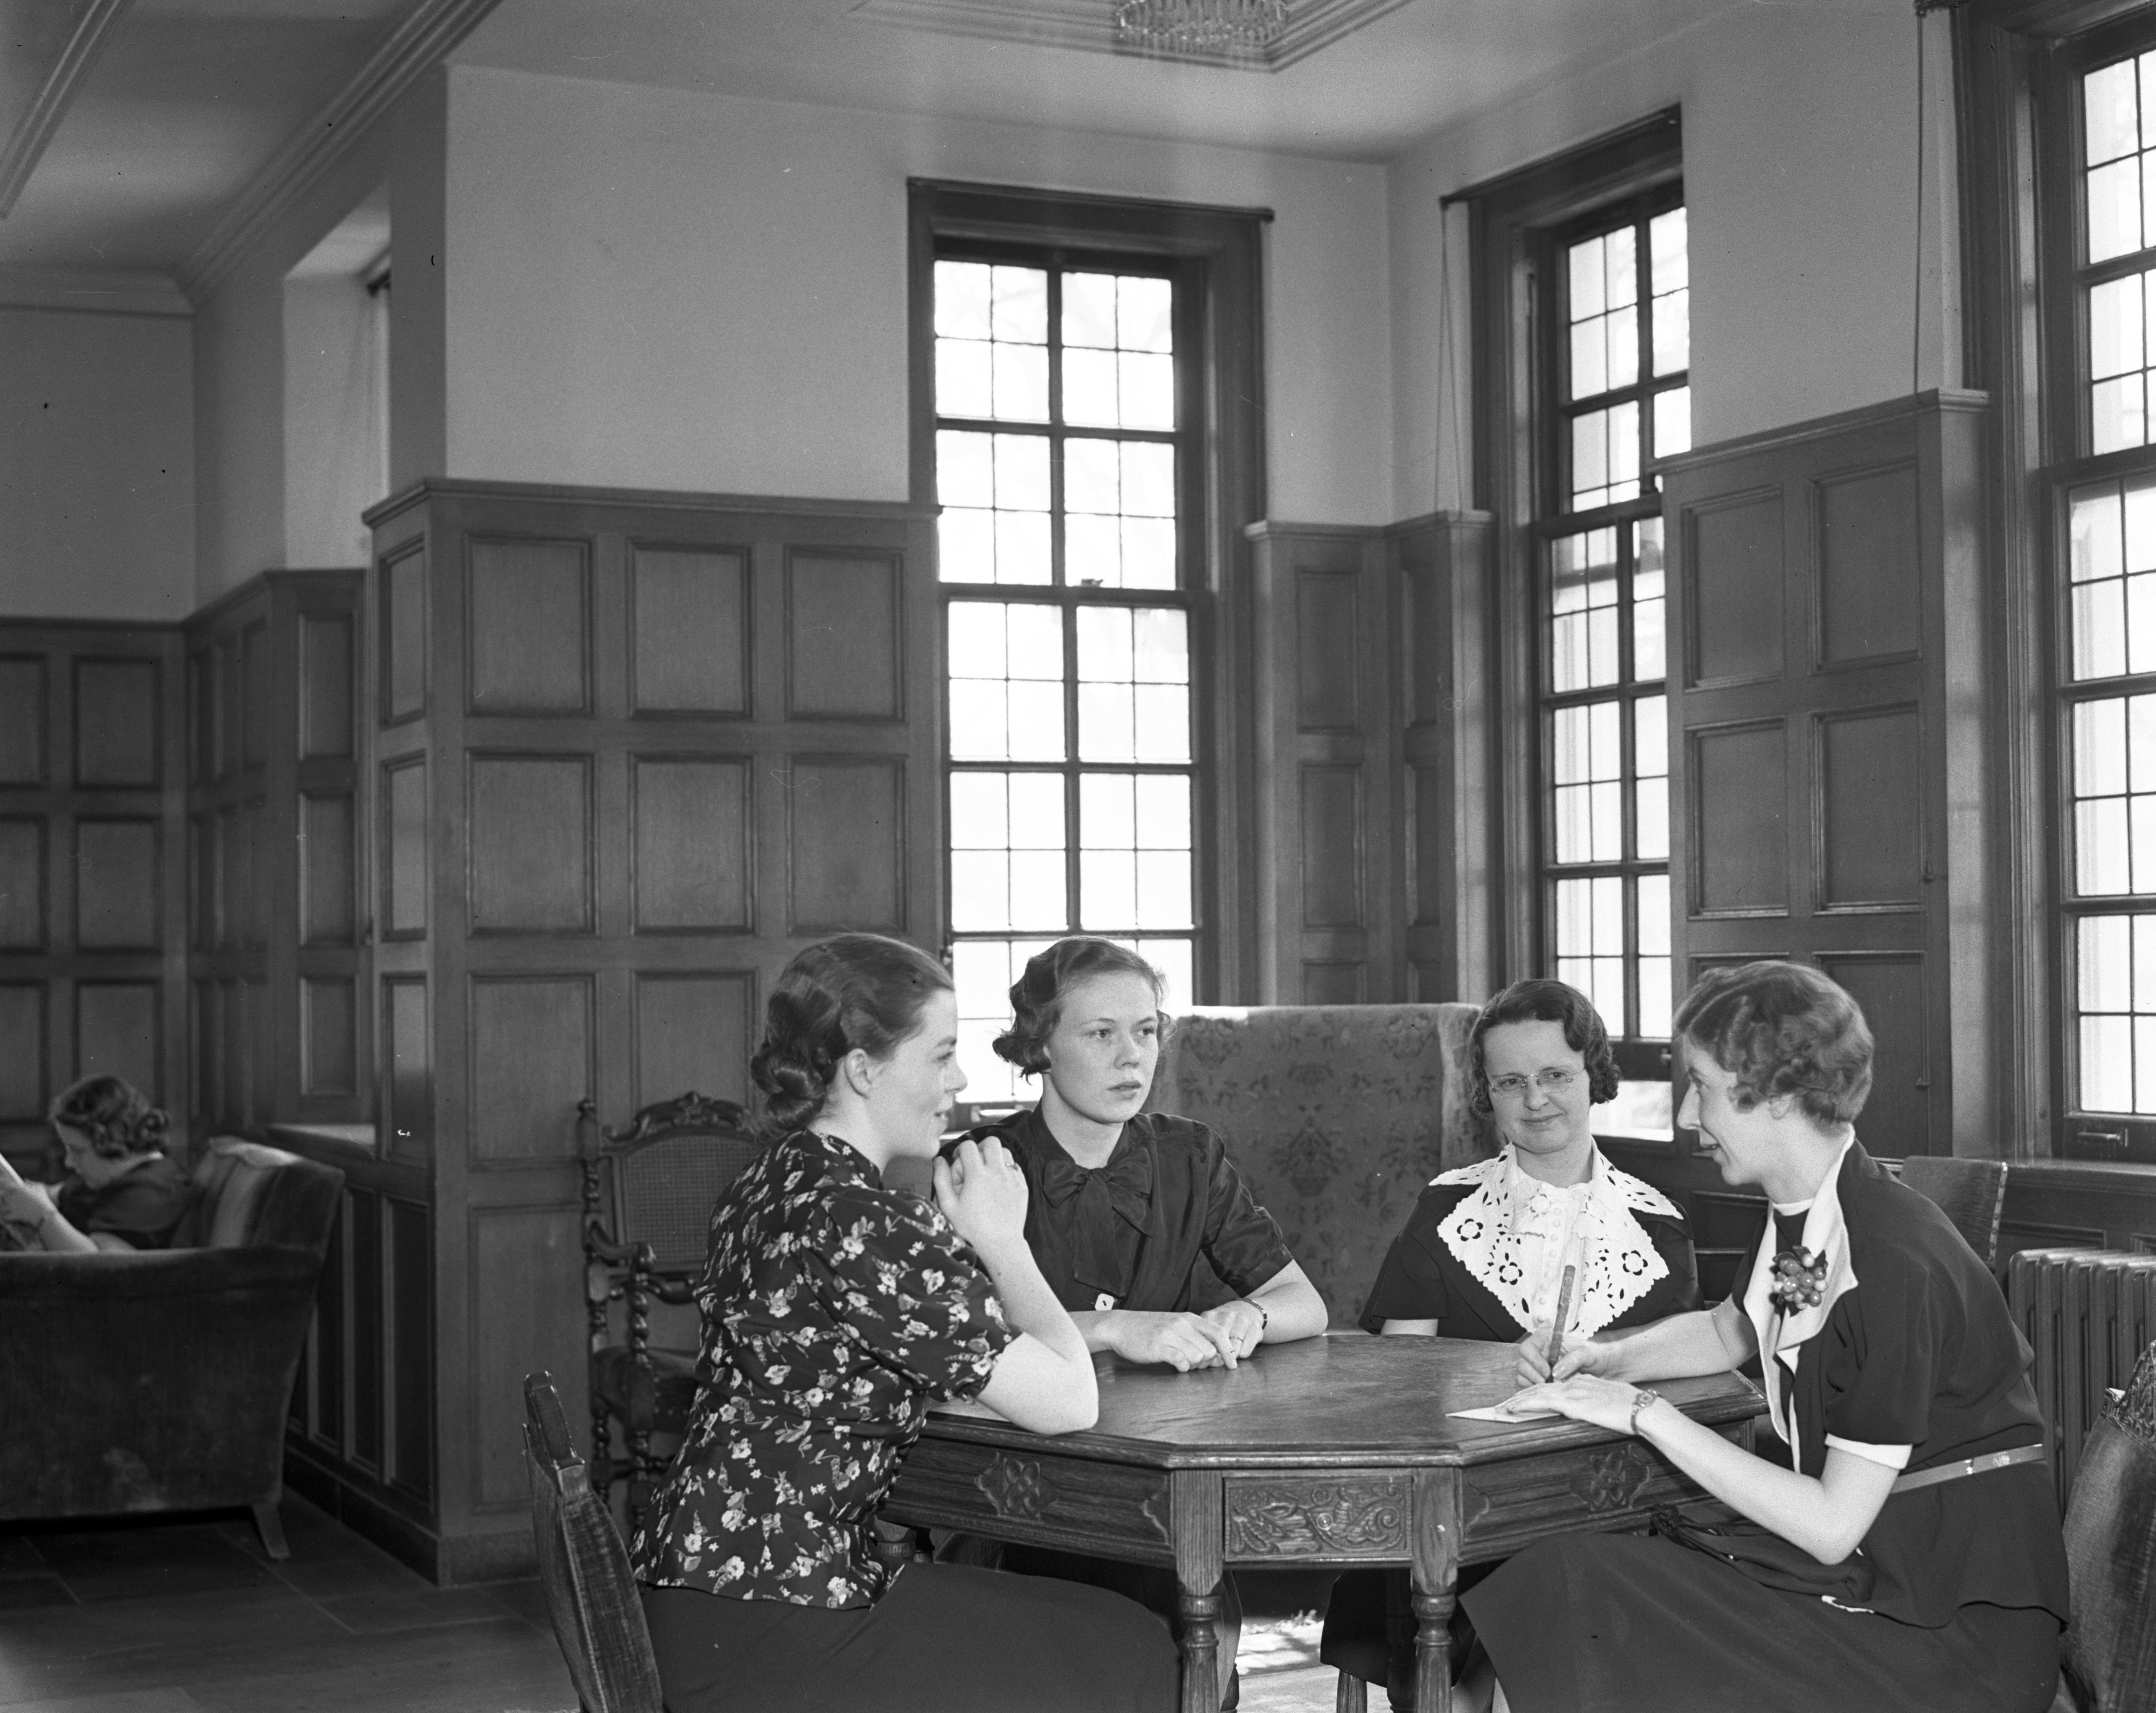 Local Members Of Alpha Gamma Delta Sorority Plan To Celebrate International Reunion Day, April 1937 image